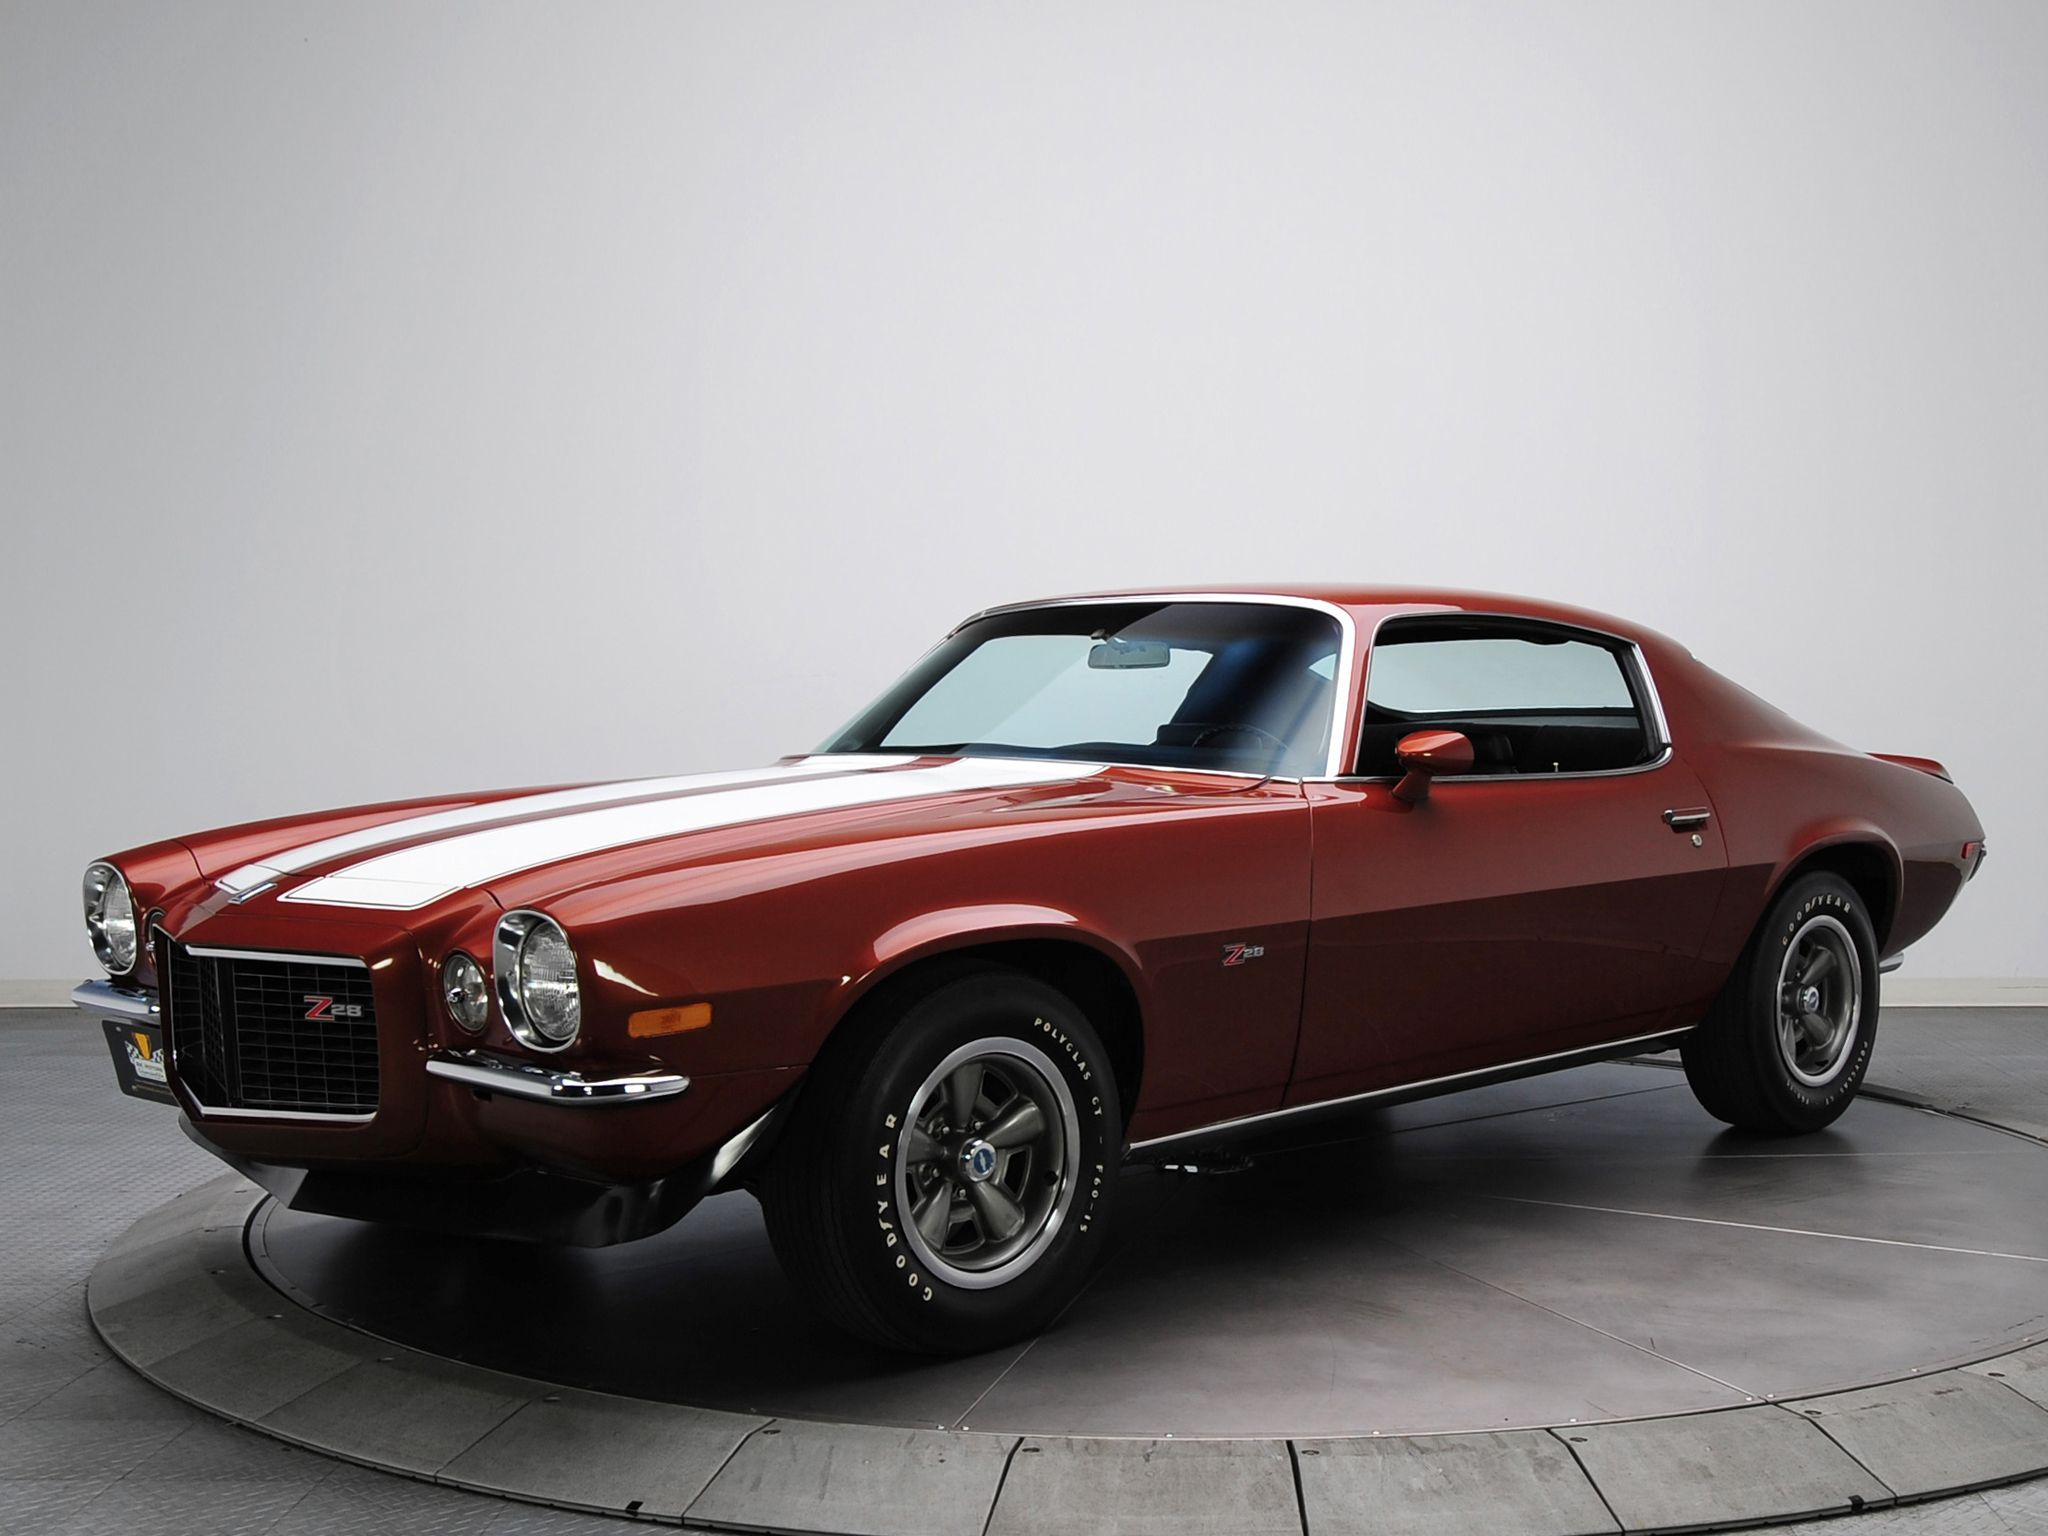 Chevrolet wallpapers chevrolet camaro ii generation 1970 for Selling wallpaper